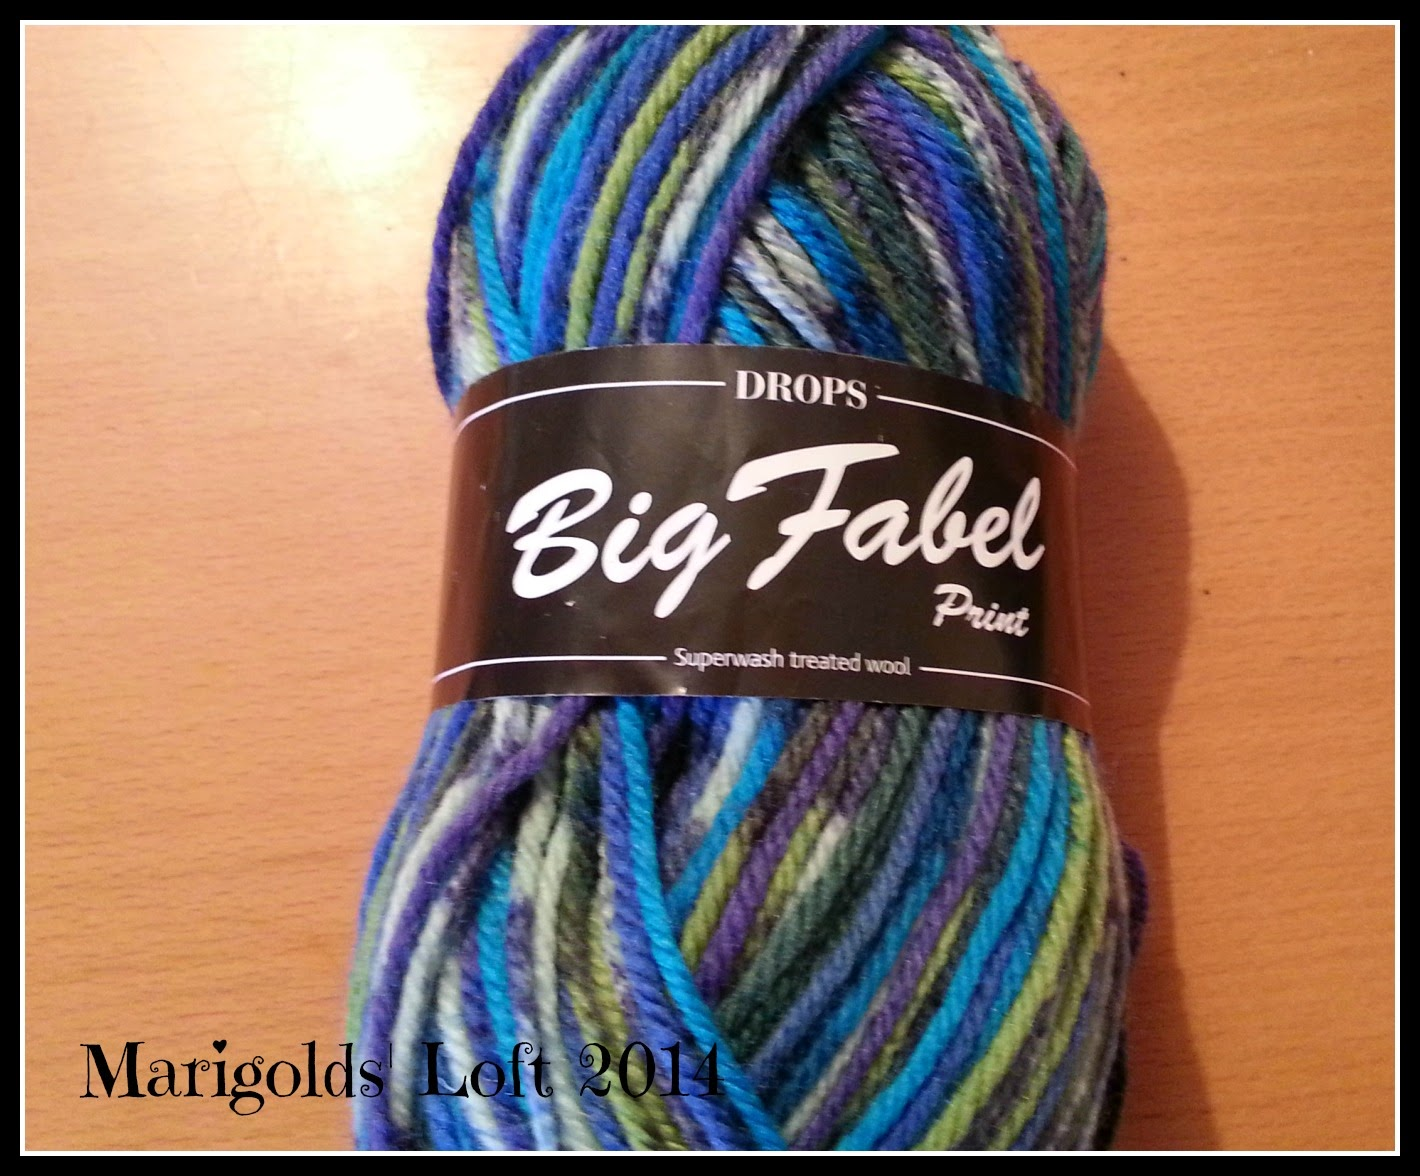 Drops Big Fabel